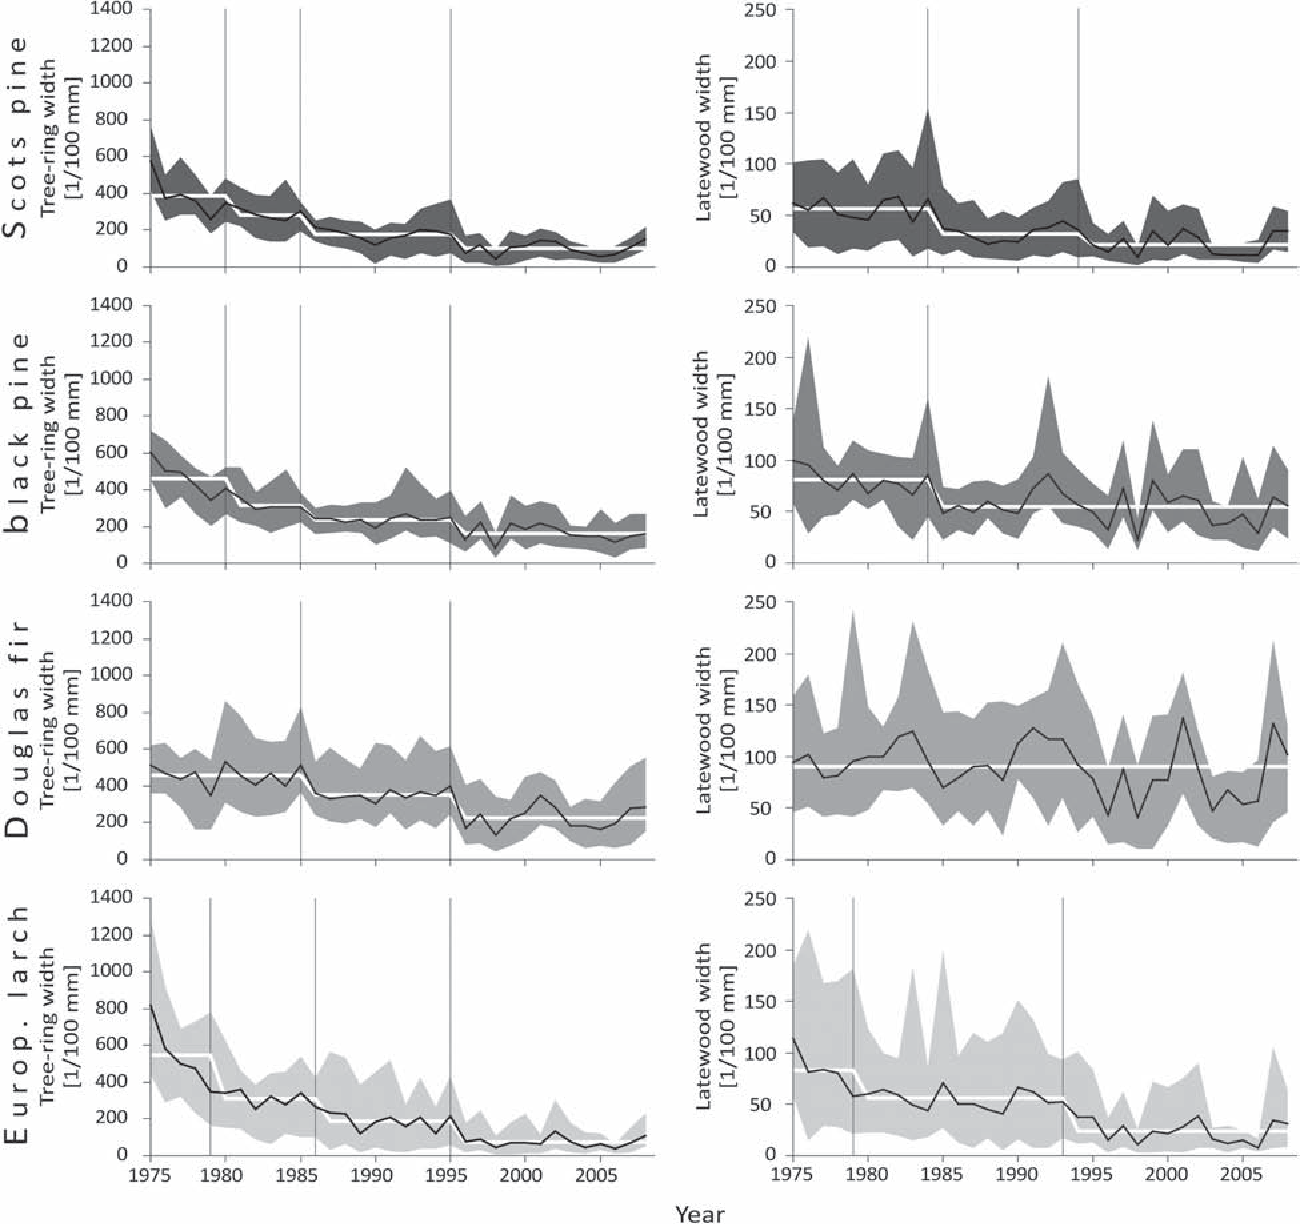 Figure 2 From Tree Growth Analyses To Estimate Species Drought Ring Diagram And Latewood Chronologies Per Black Curve With